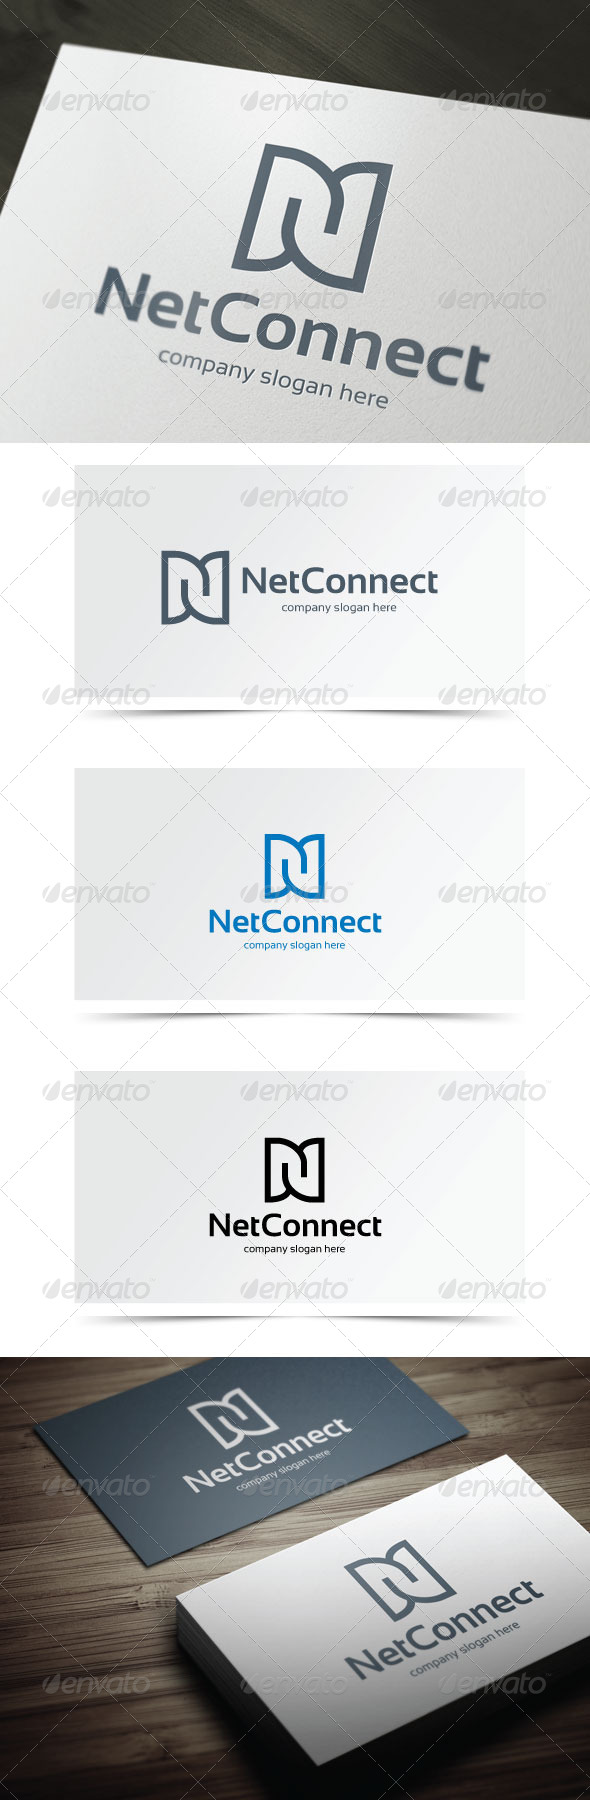 GraphicRiver Net Connect 5926562